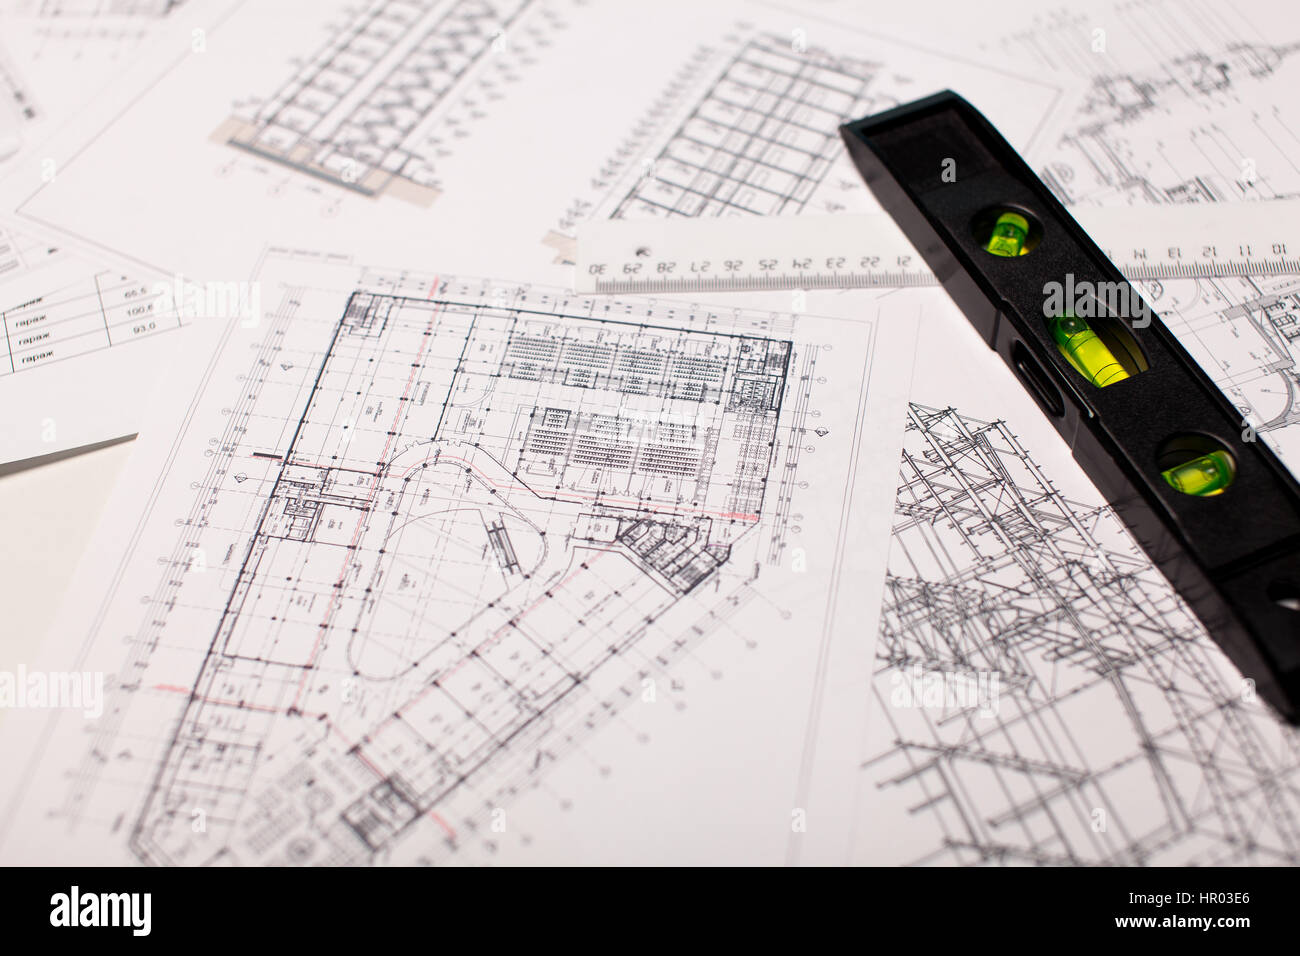 Architecture Background: Construction Plan Tools And Blueprint Drawings